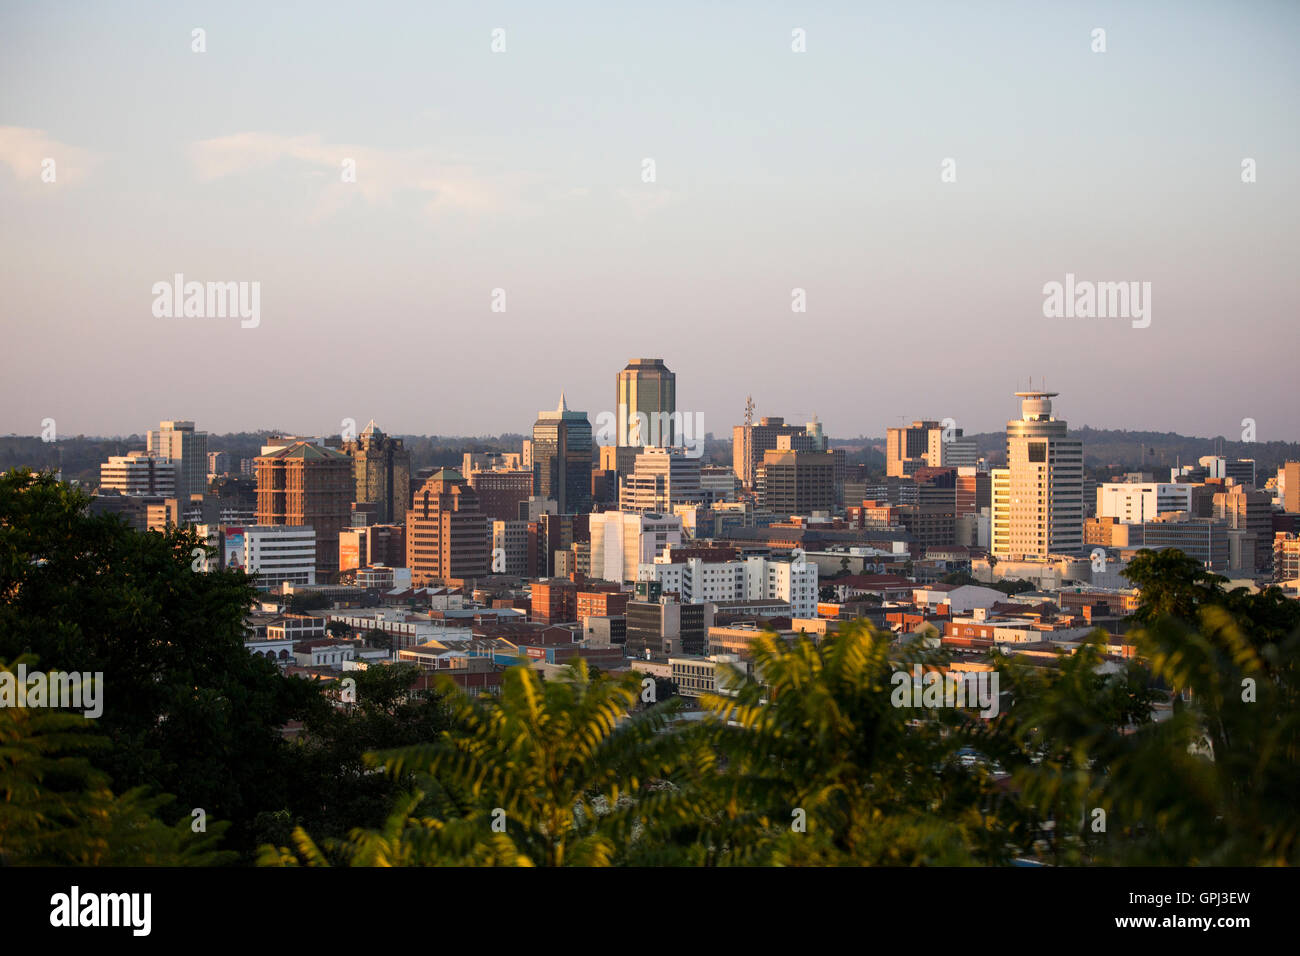 The heart of Zimbabwe - the capital of Harare 11